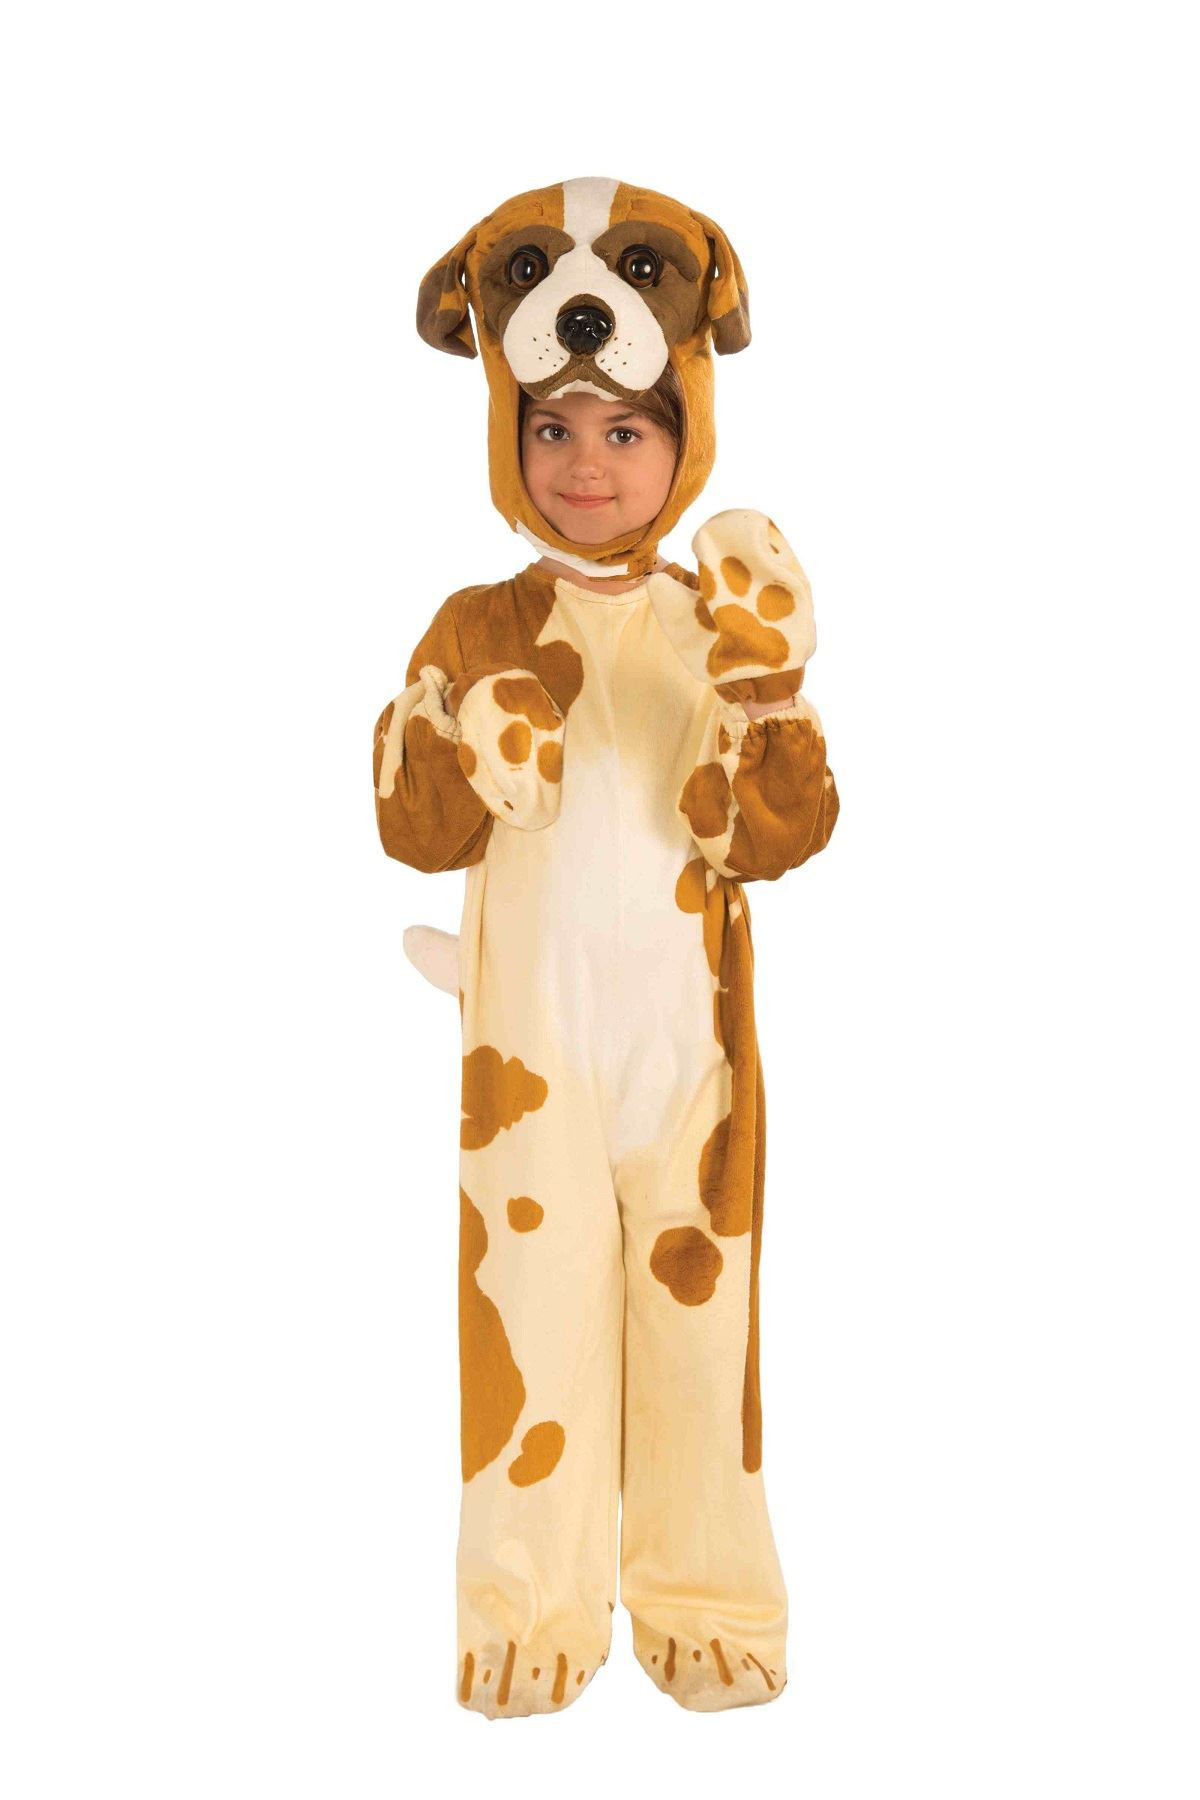 Best ideas about DIY Dog Costume For Kids . Save or Pin Homemade Dog Costume For Kids Now.